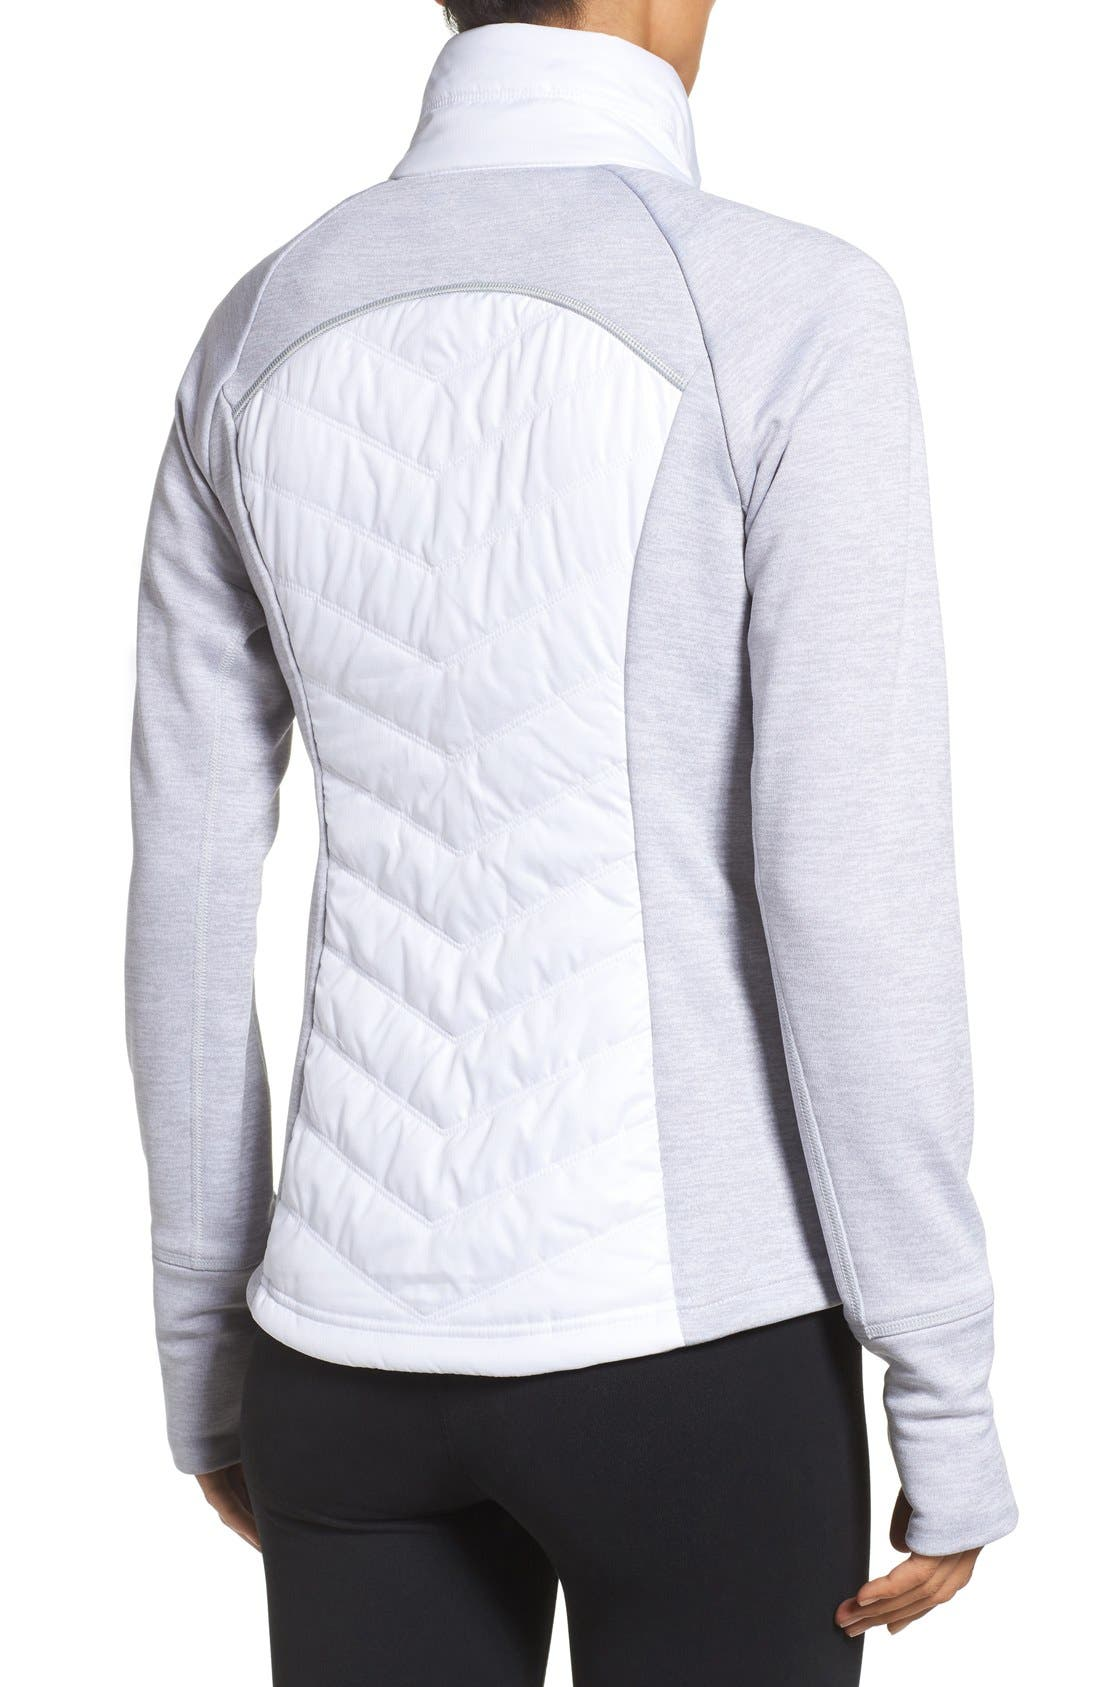 Zelfusion Reflective Quilted Jacket,                             Alternate thumbnail 24, color,